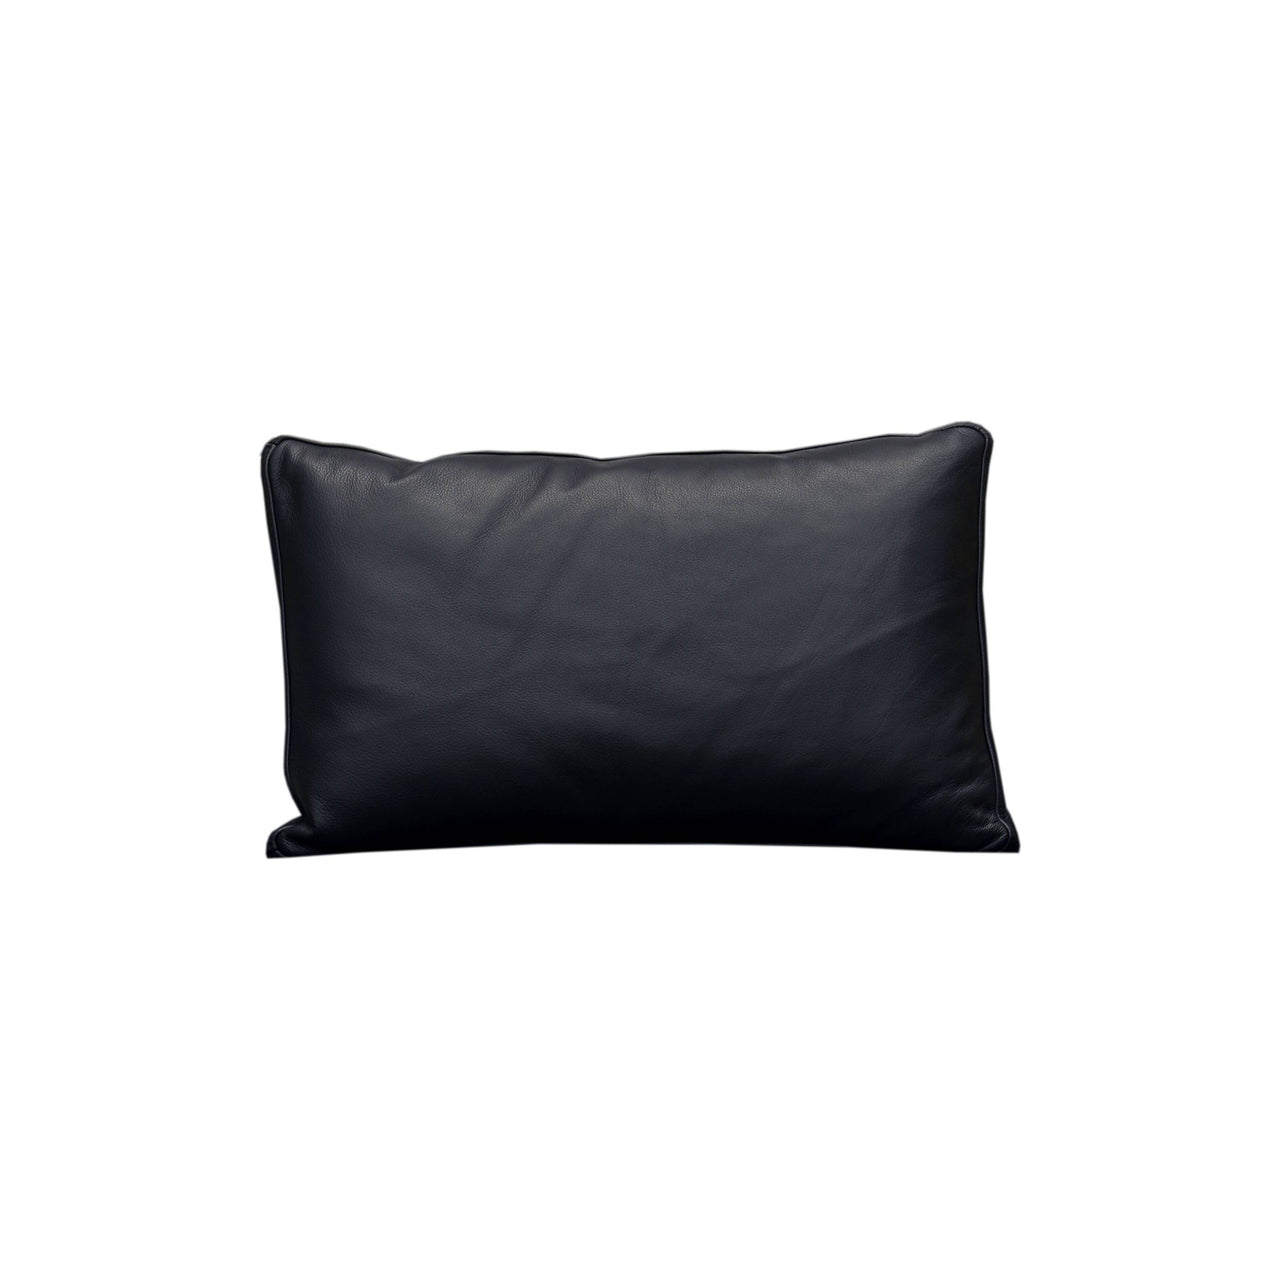 Ling Loose Cushion: Large